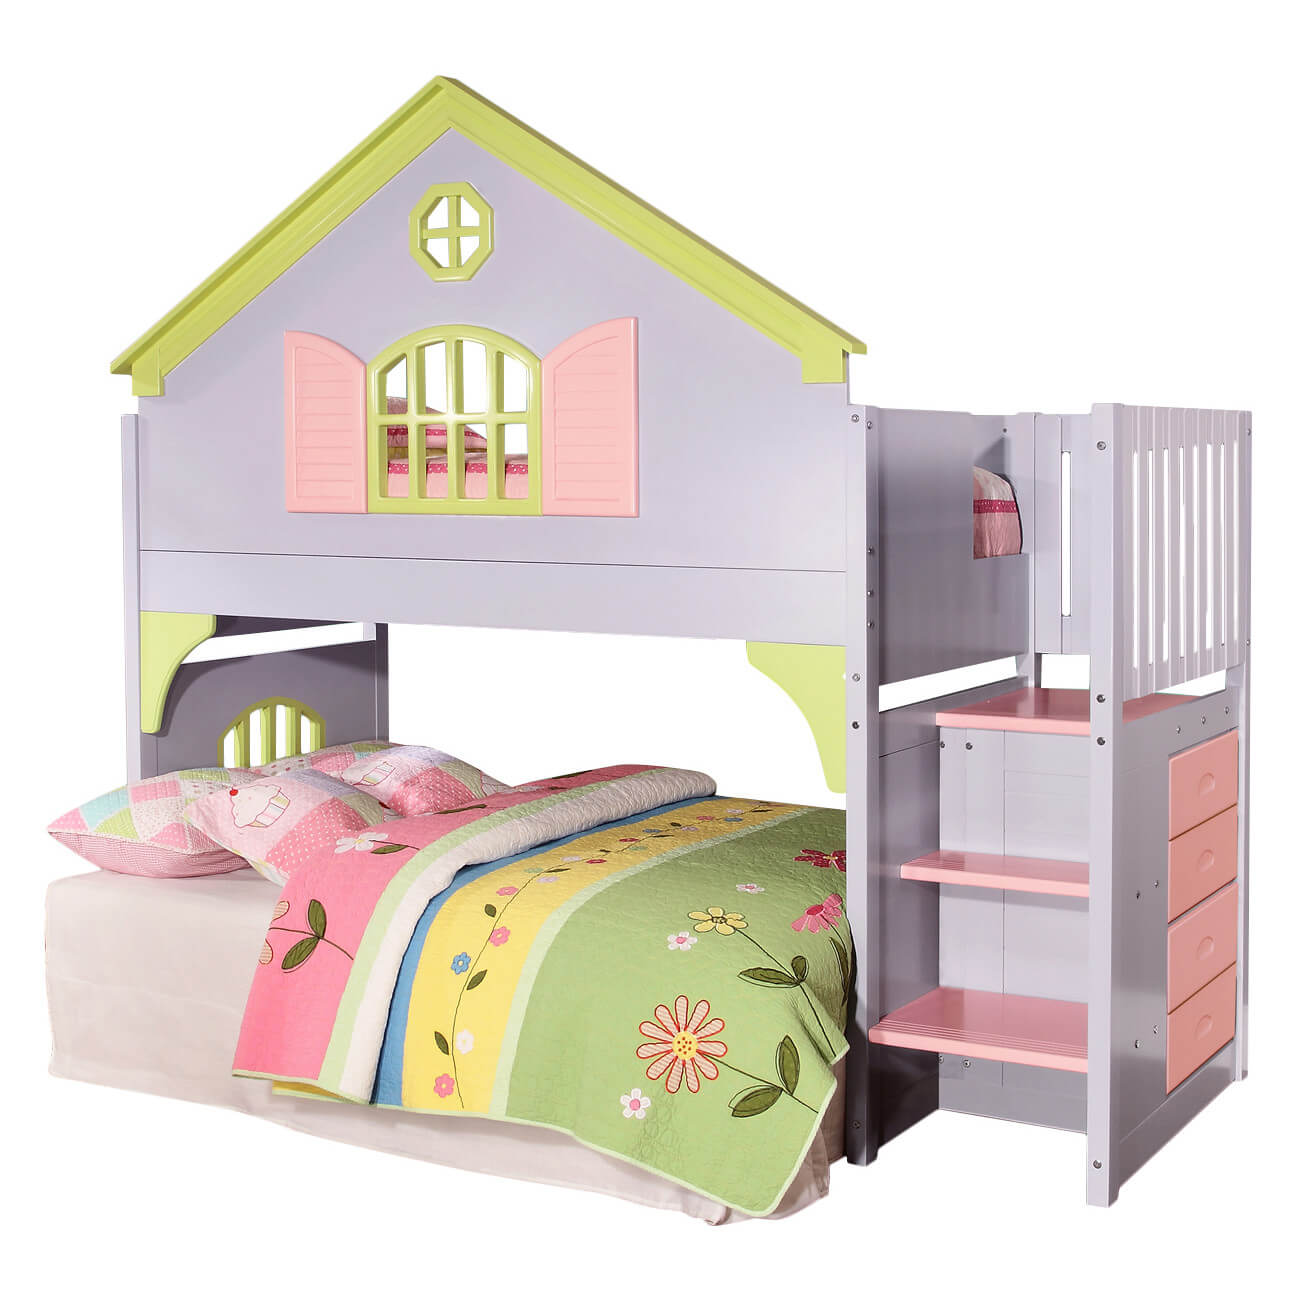 Fun Girls Beds 34 Fun Girls And Boys Kid's Beds & Bedrooms Photos